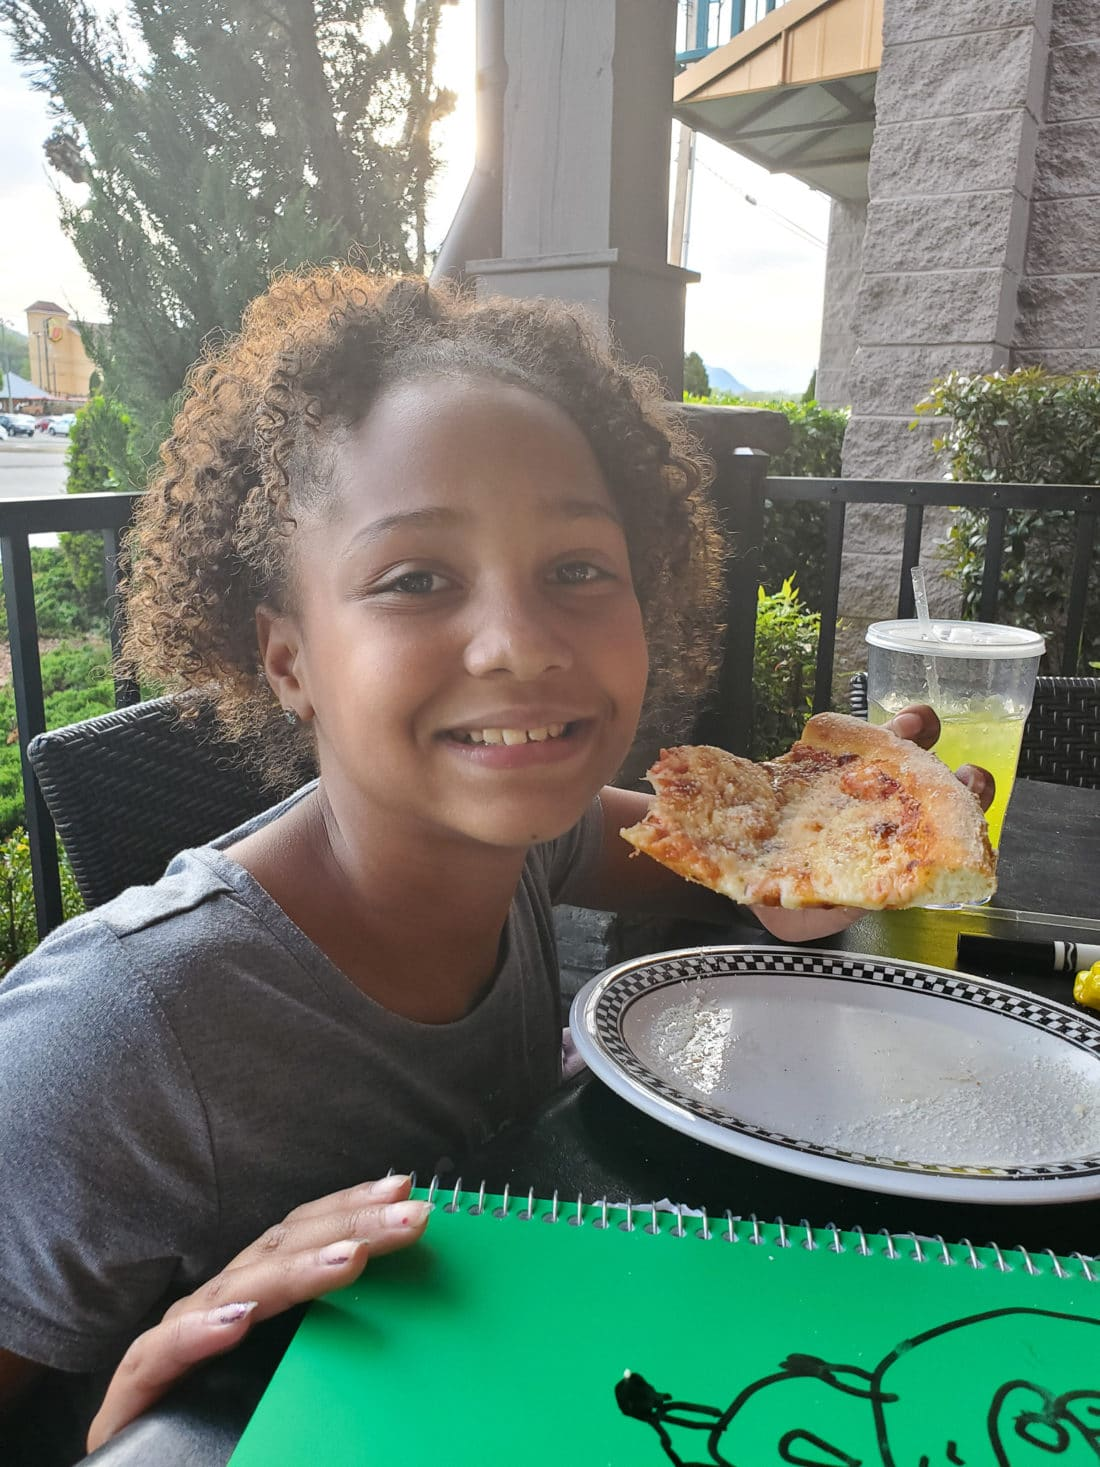 Big Daddy's Pizzeria Keturah. This is not your average pizza pie!At the heart of Big Daddy's is a 550 degree, wood-fired flame inside of a one-of-a-kind brick oven. Read all about why this freshly made pizza is my families go to pizza joint in Pigeon Forge, TN.